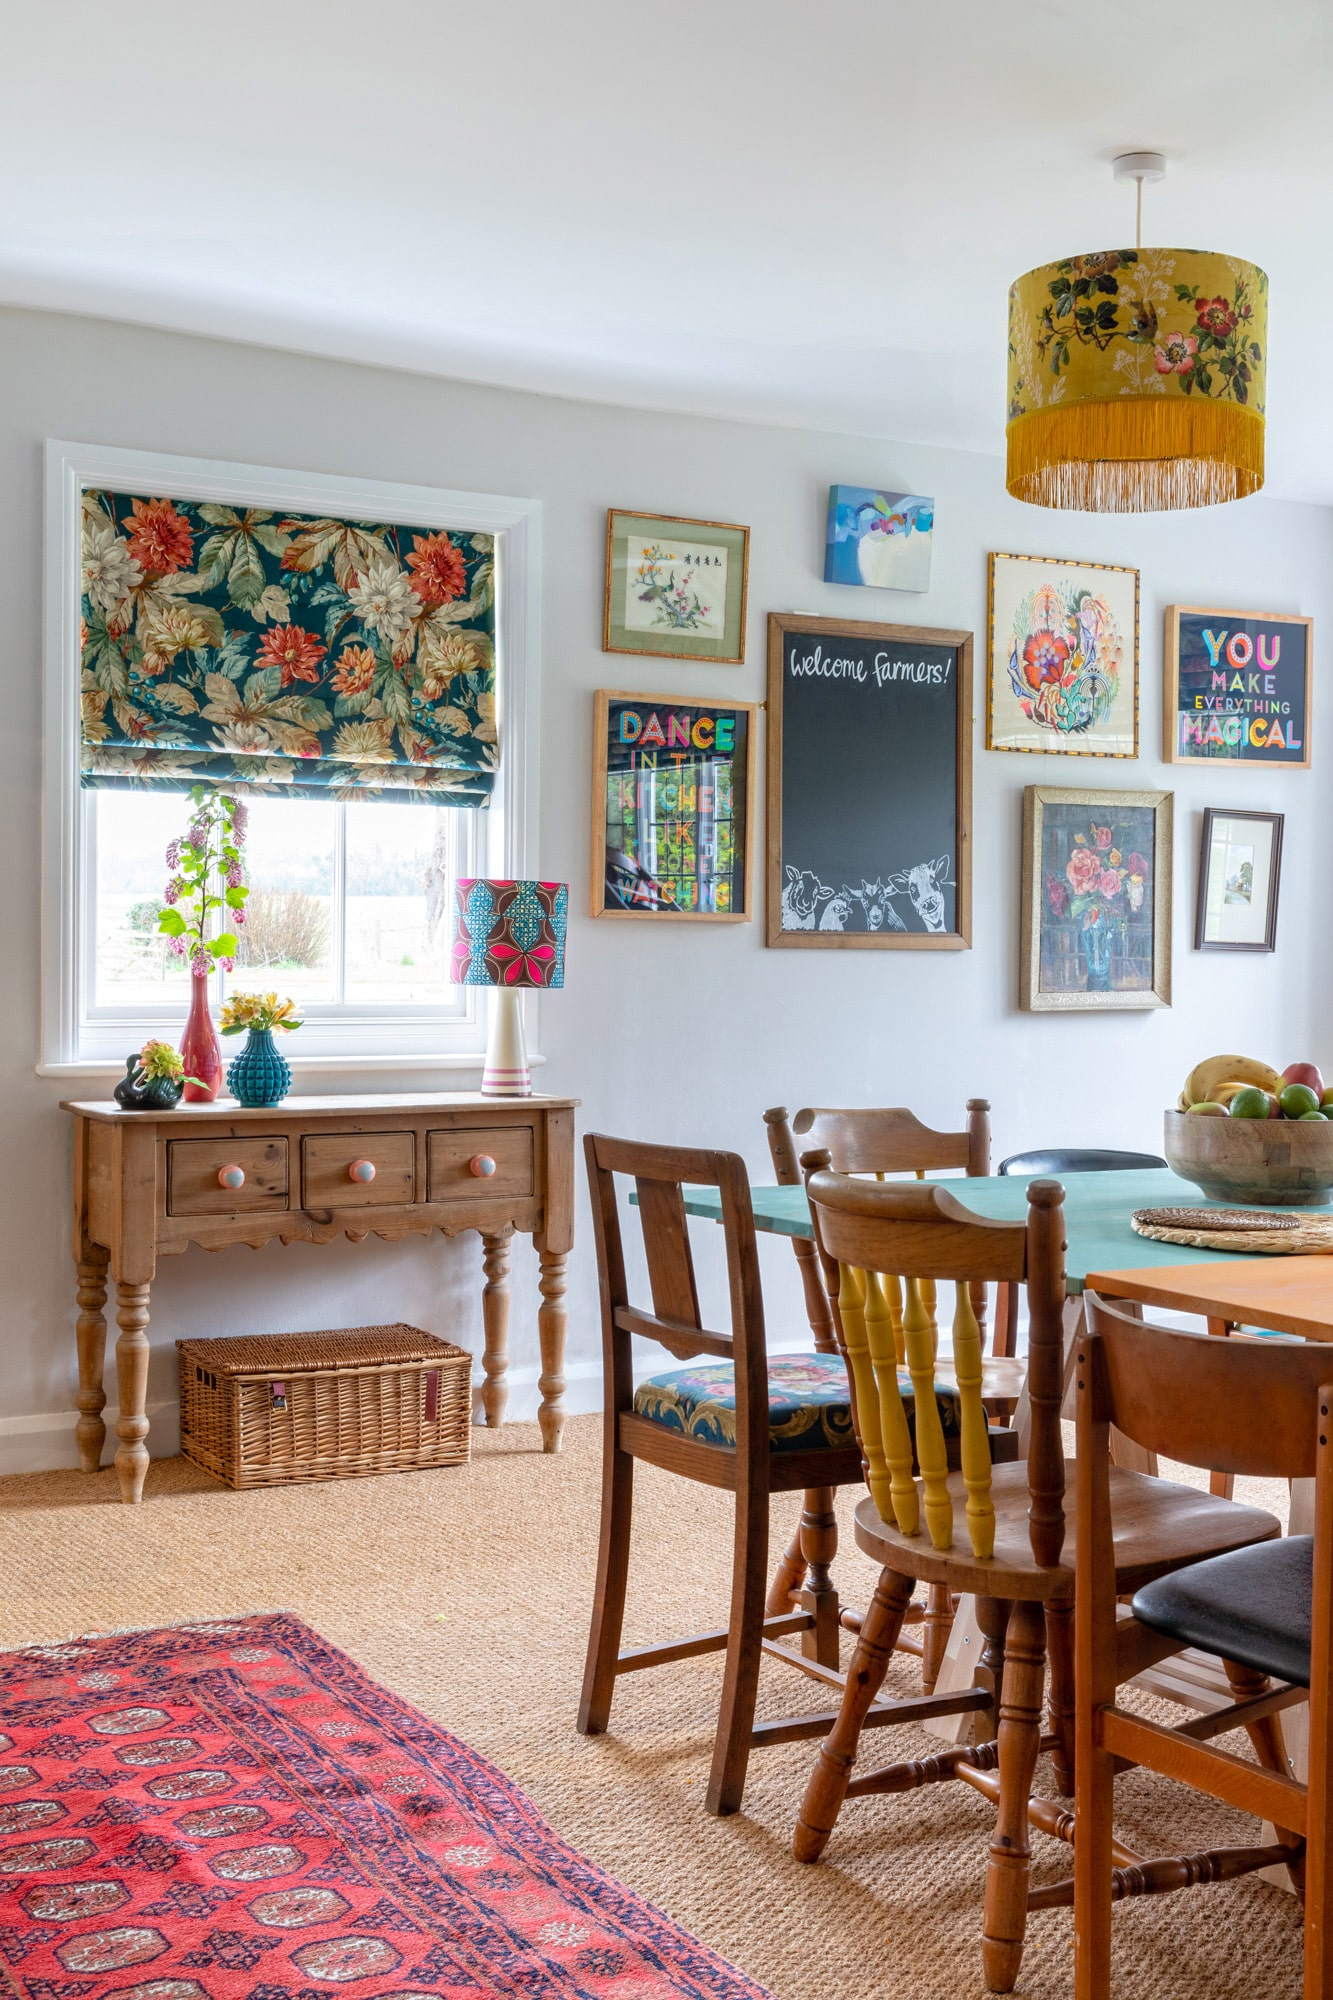 interior photo: colourful dining room, with art, wooden table, chairs, floral print on the roller curtains